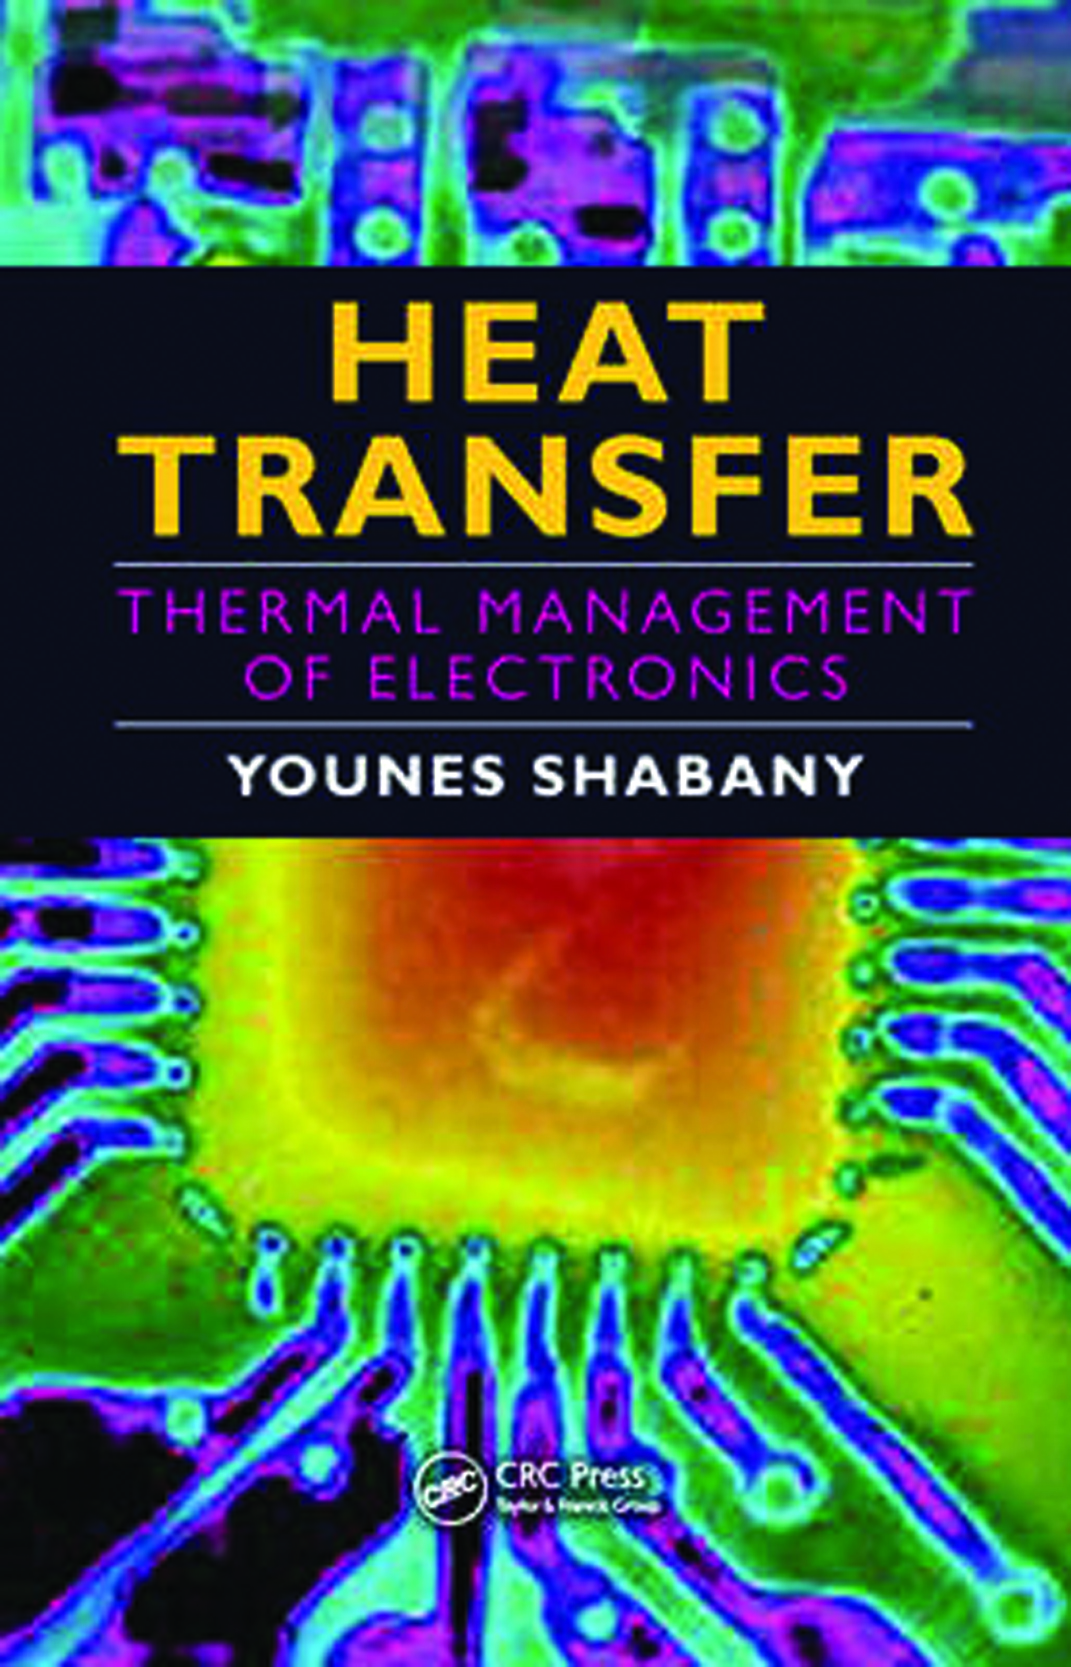 introduction to heat transfer 6th edition solution manual pdf